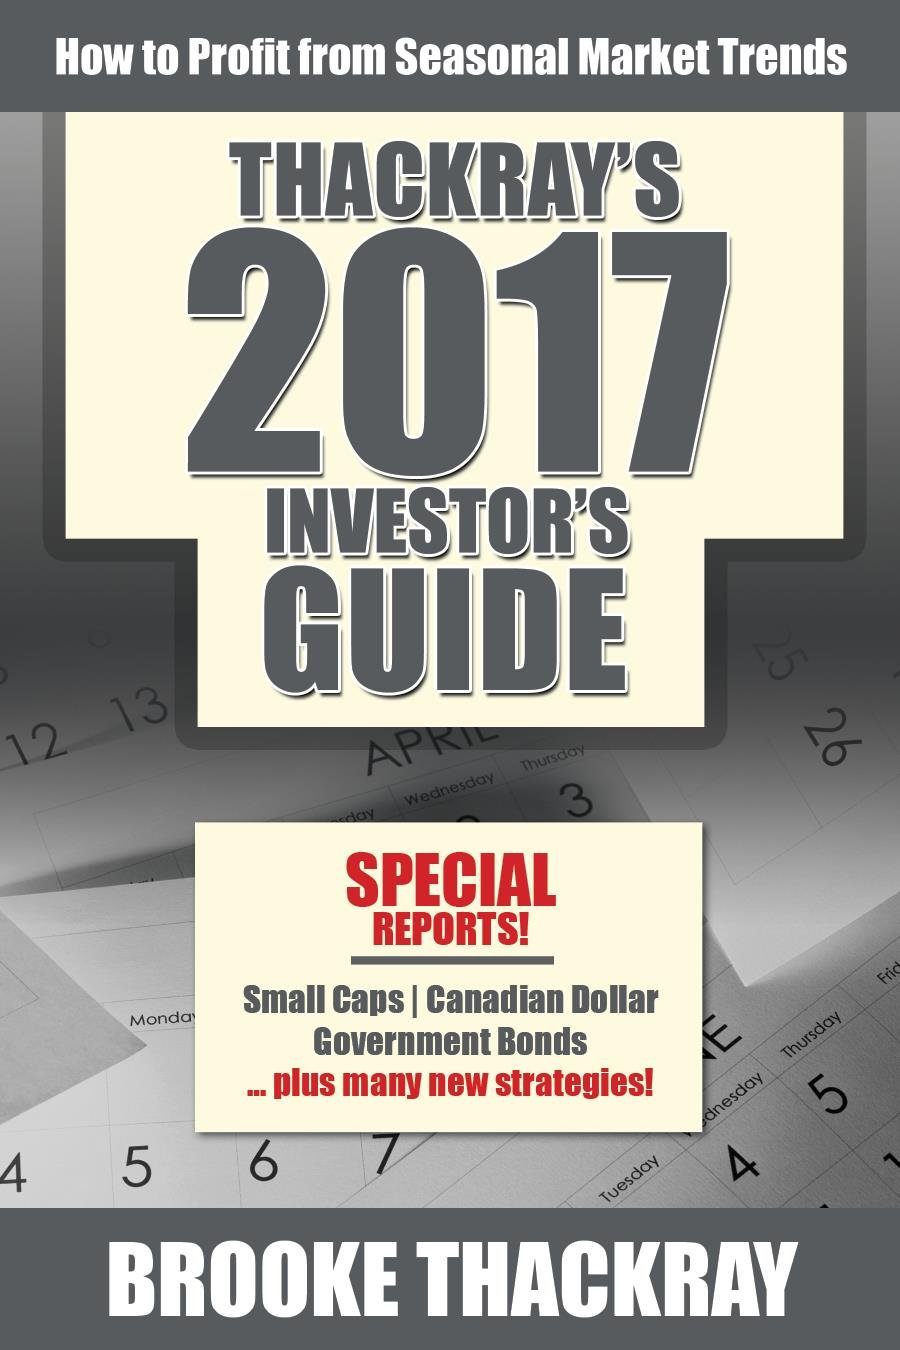 Thackray's 2017 Investor's Guide: How To Profit From Seasonal Market Trends (Thackray's Investor's Guide) ebook